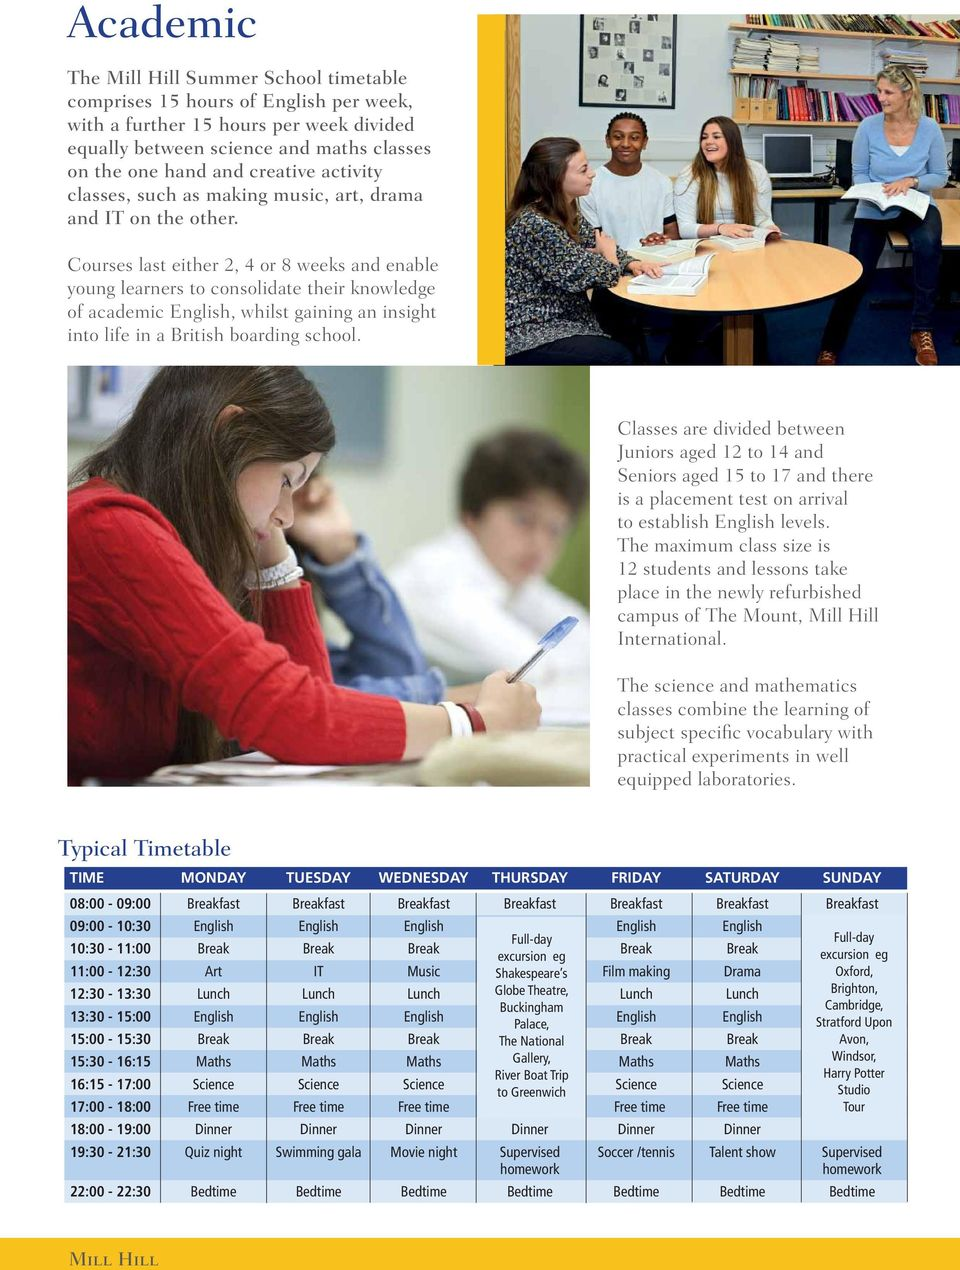 Courses last either 2, 4 or 8 weeks and enable young learners to consolidate their knowledge of academic English, whilst gaining an insight into life in a British boarding school.